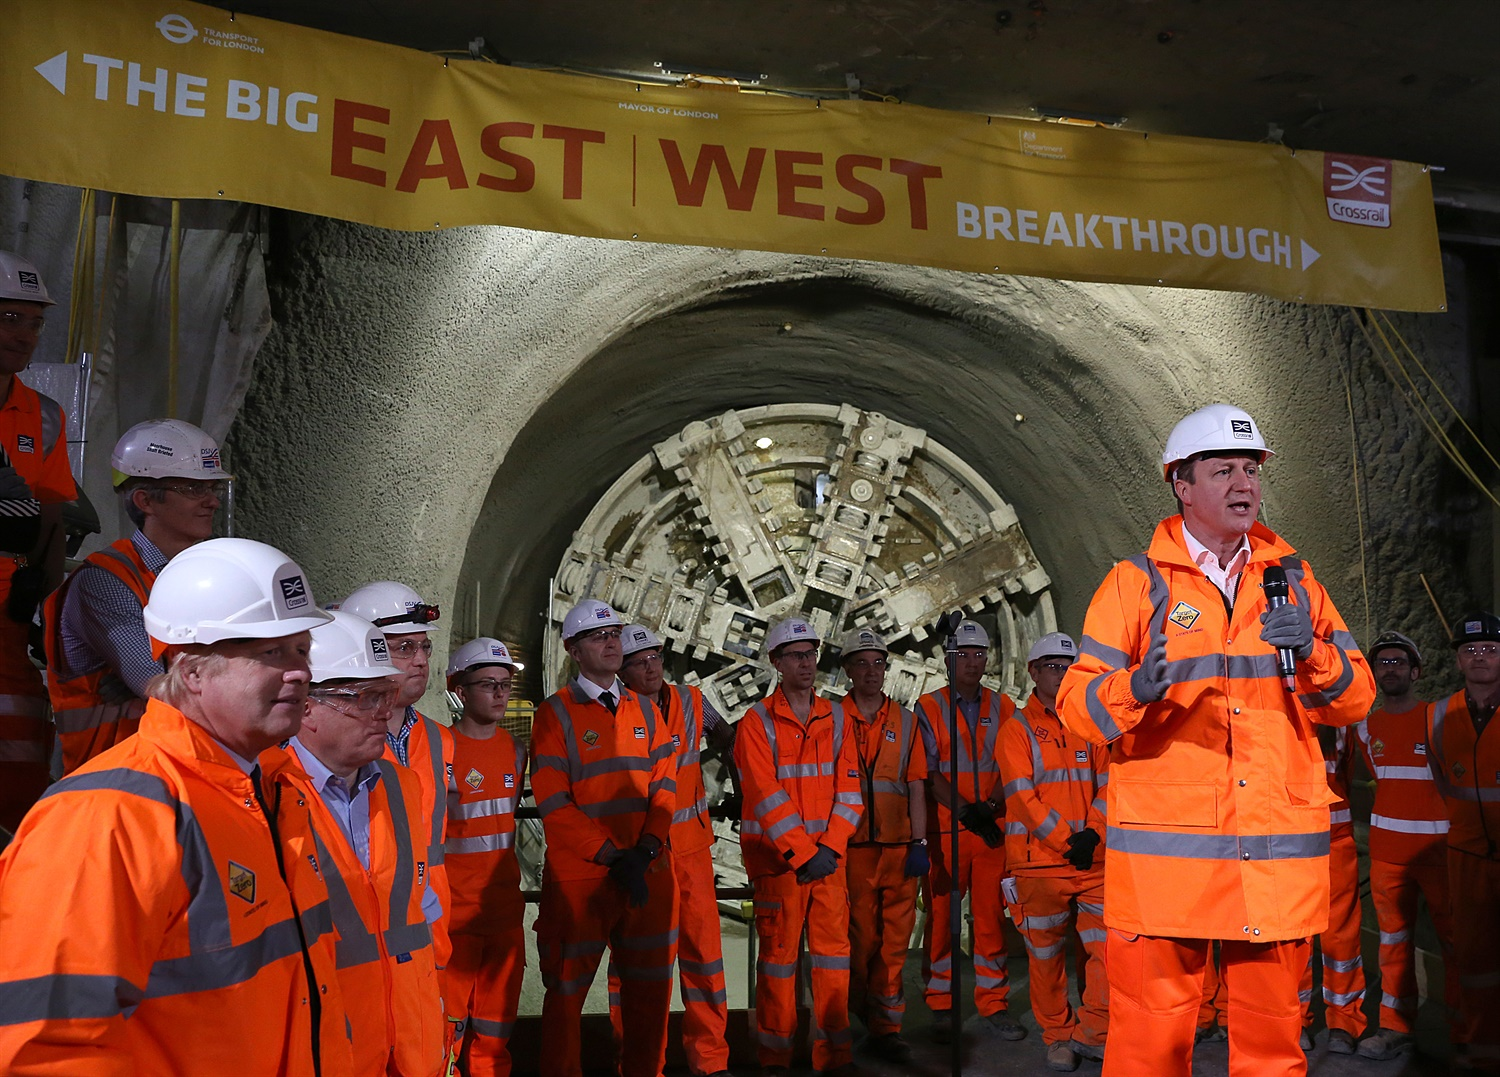 Crossrail completes tunnelling work